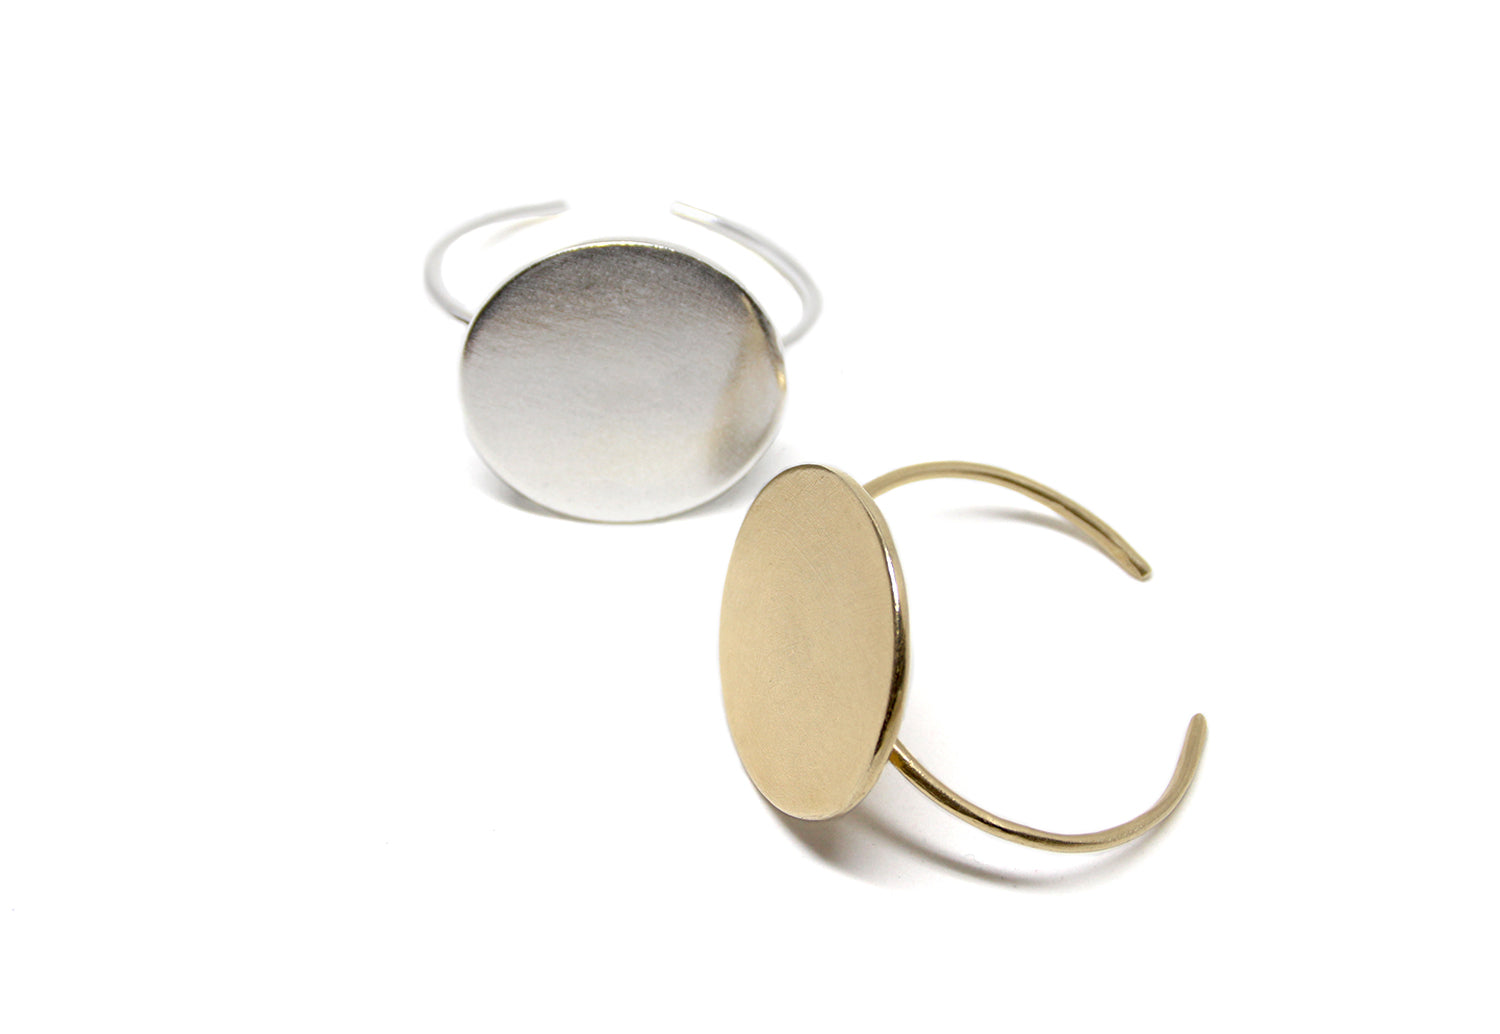 llayers jewelry cuff solstice brass bracelet rond minimal lunaire laiton made in france